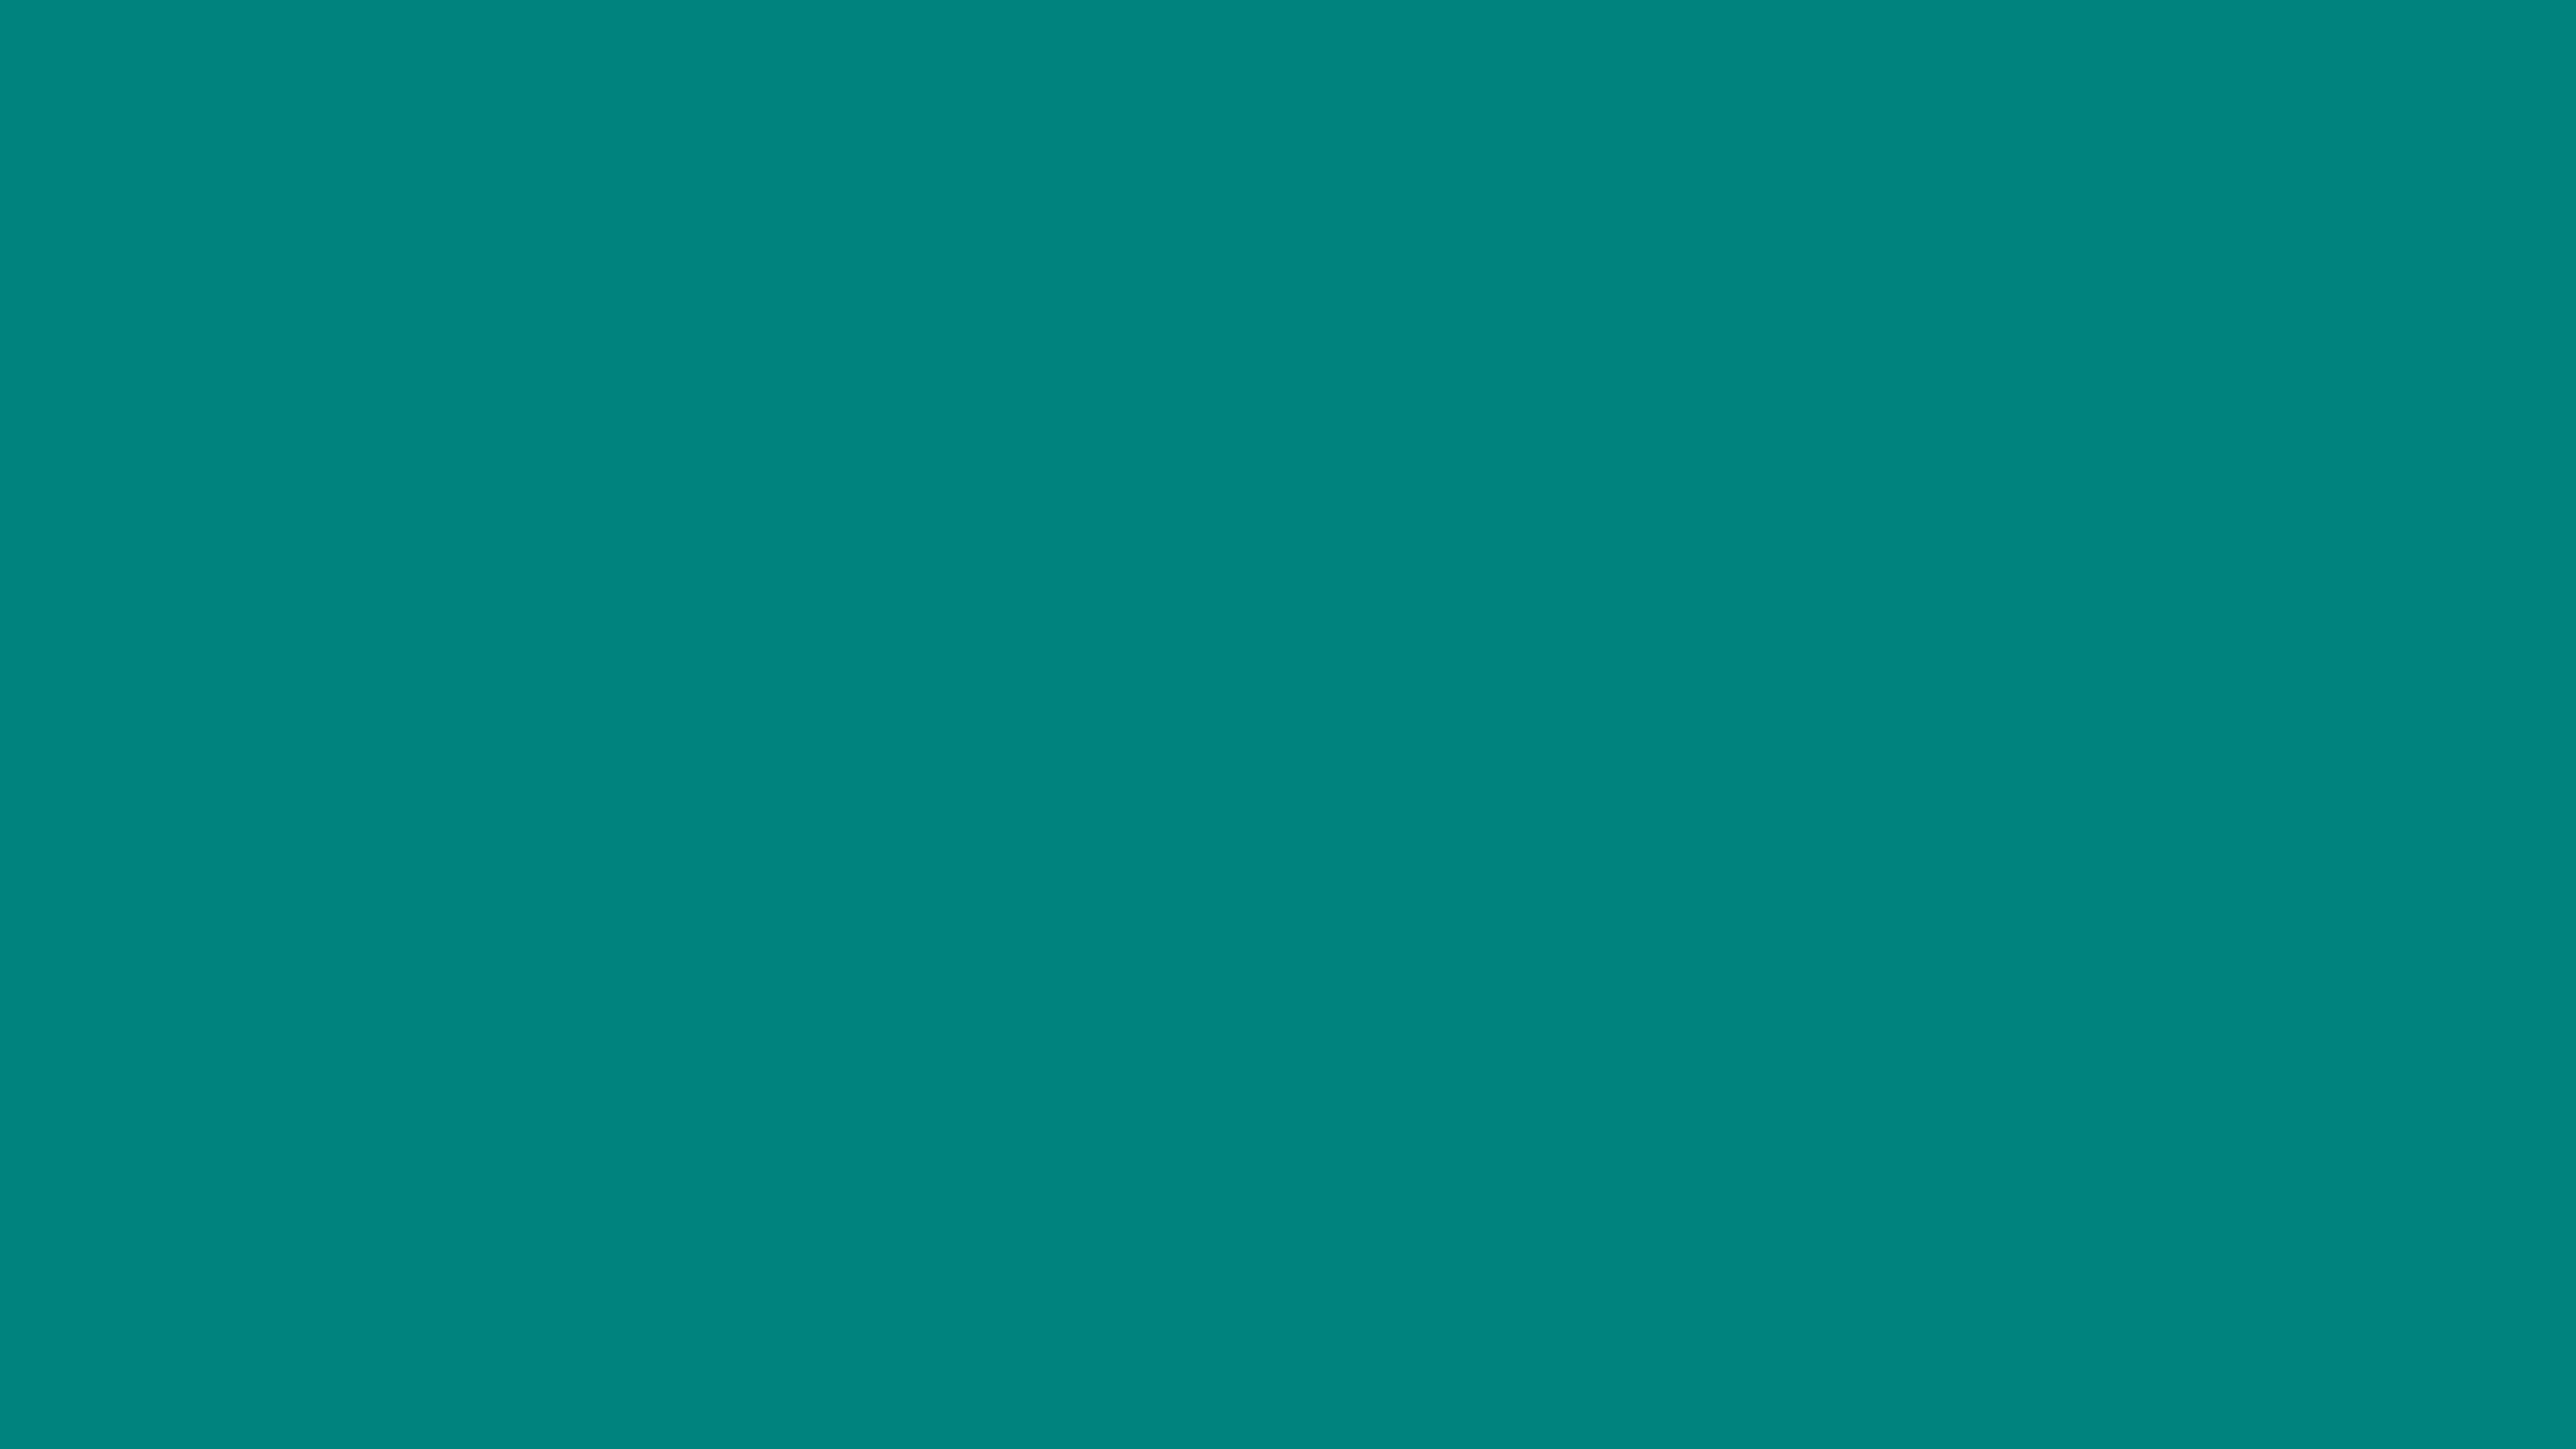 3840x2160 Teal Green Solid Color Background